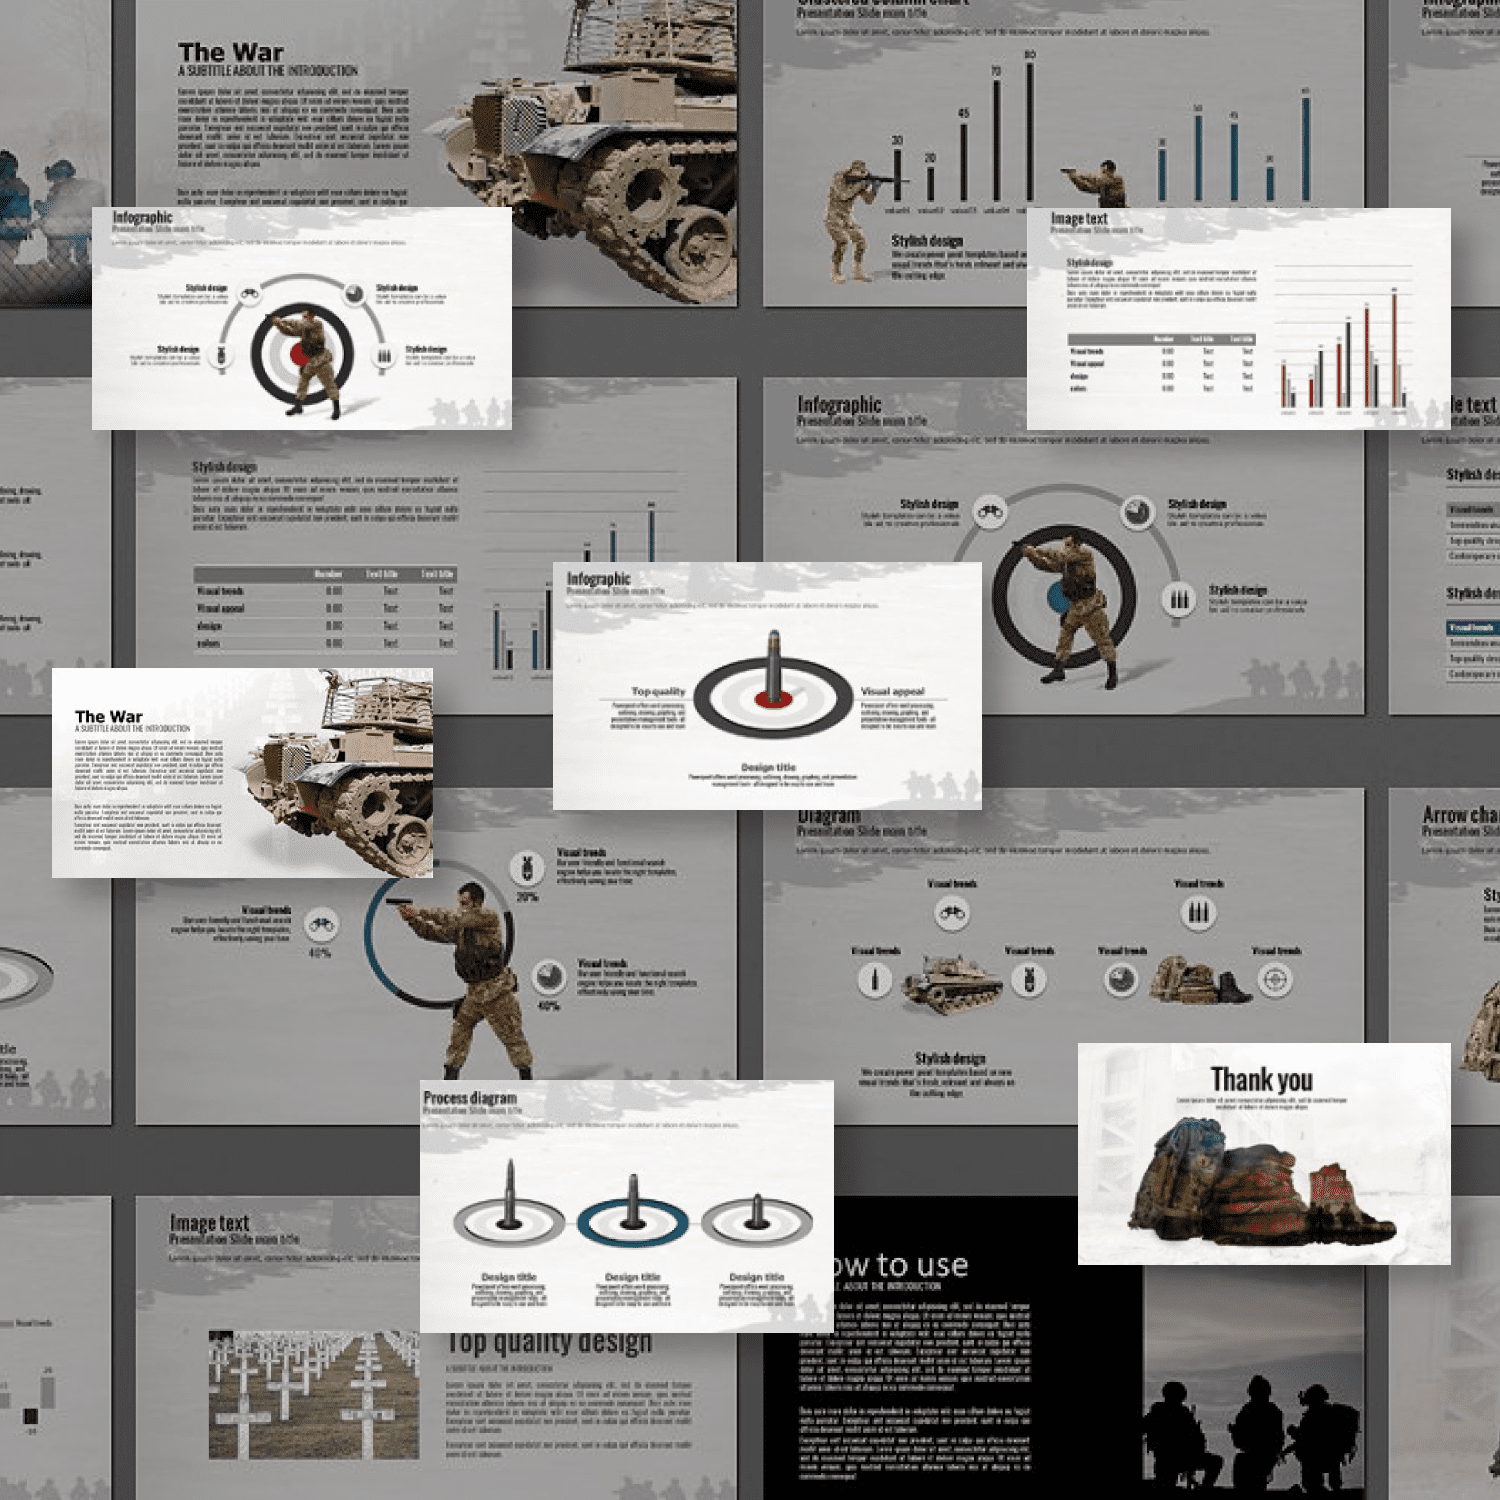 The War Powerpoint Presentation Template by MasterBundles Collage Image.